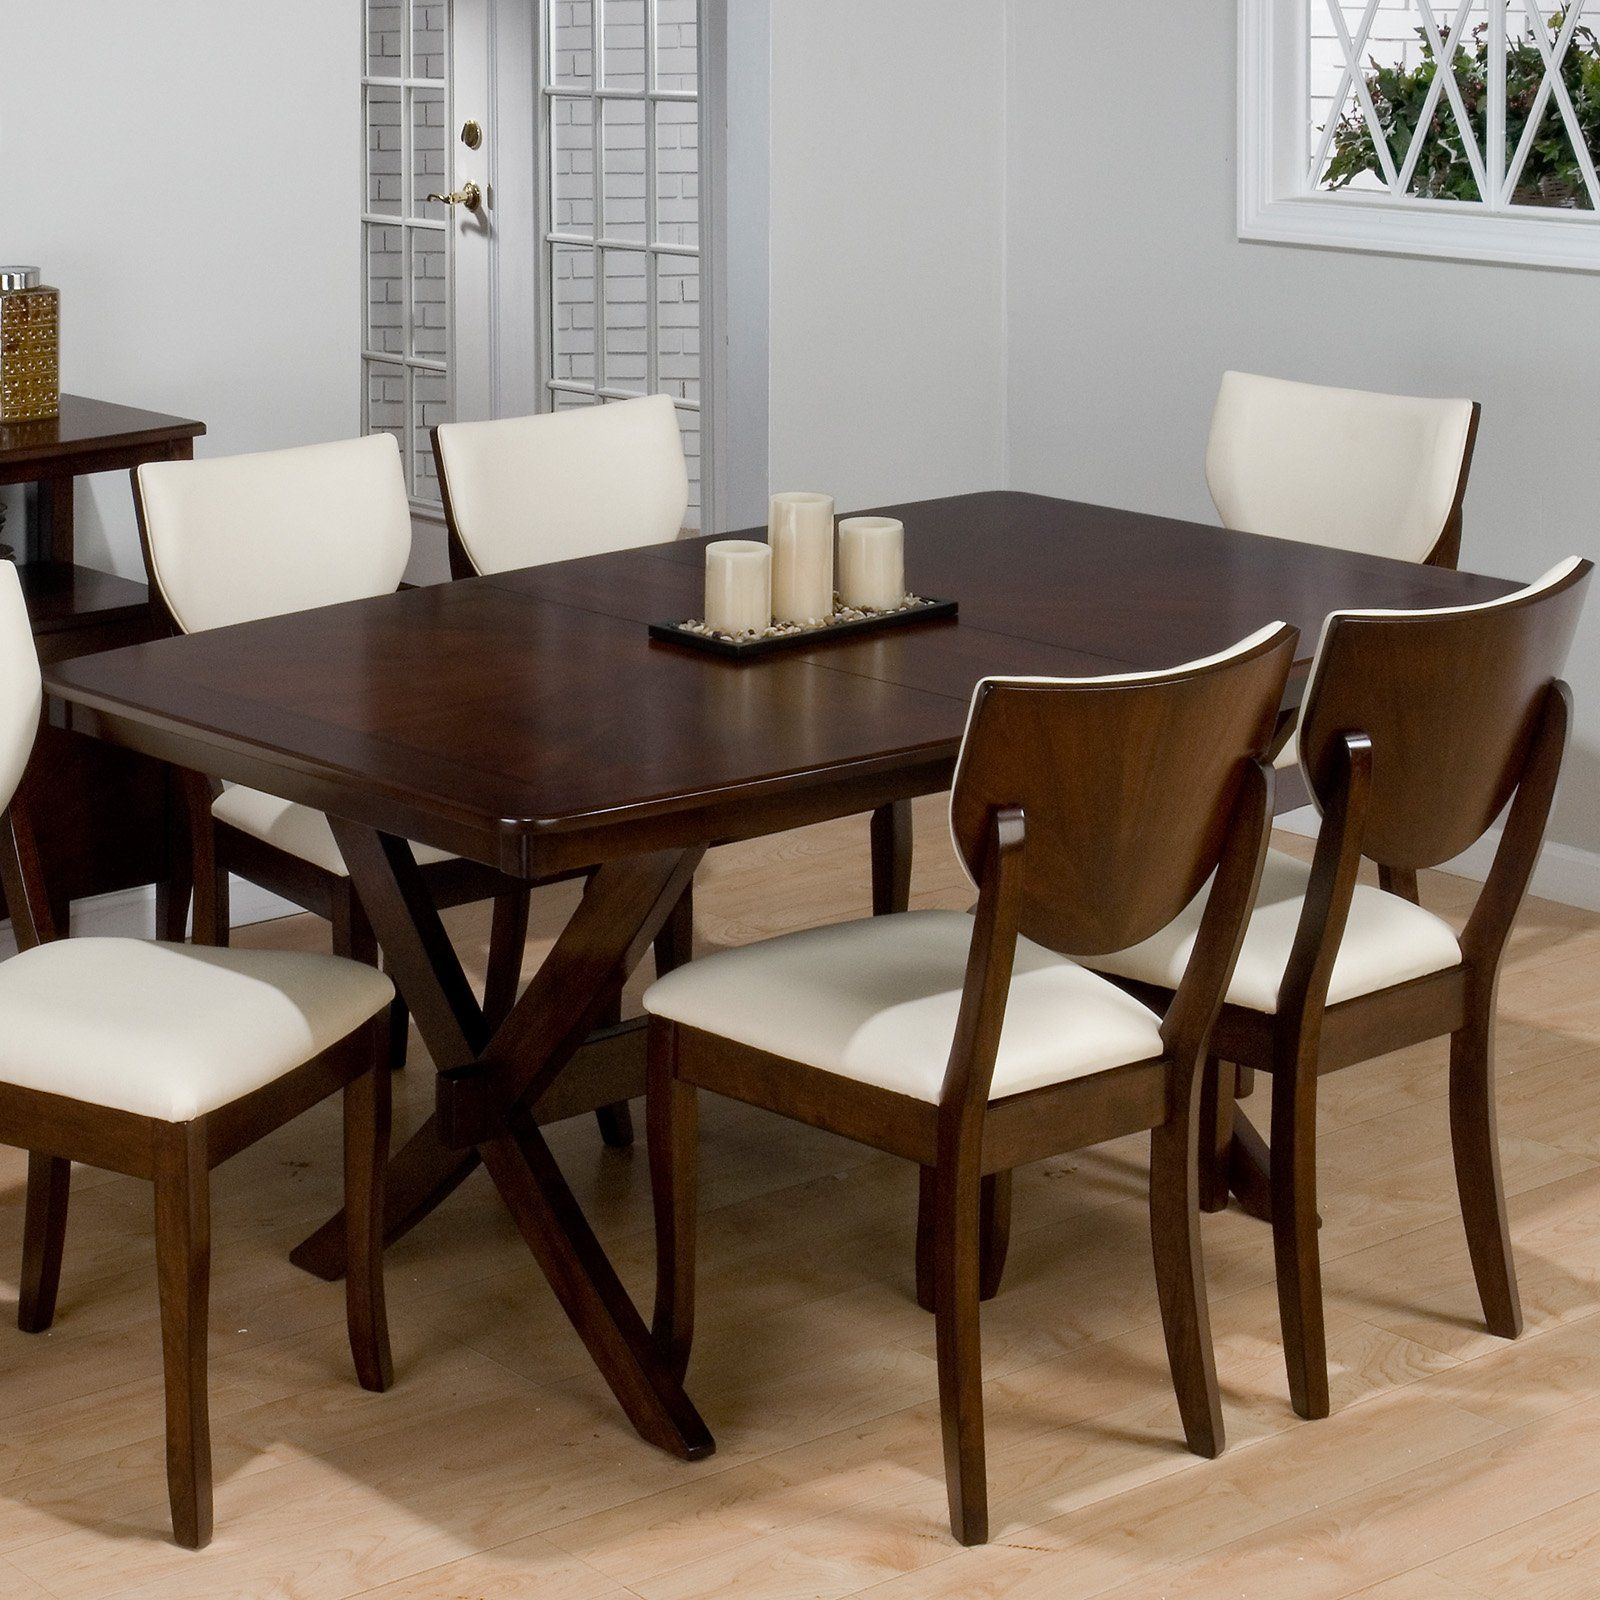 Nice Kitchen Table Sets: Kind Of A Picnic Look. Nice Addition To Kitchen. Jofran